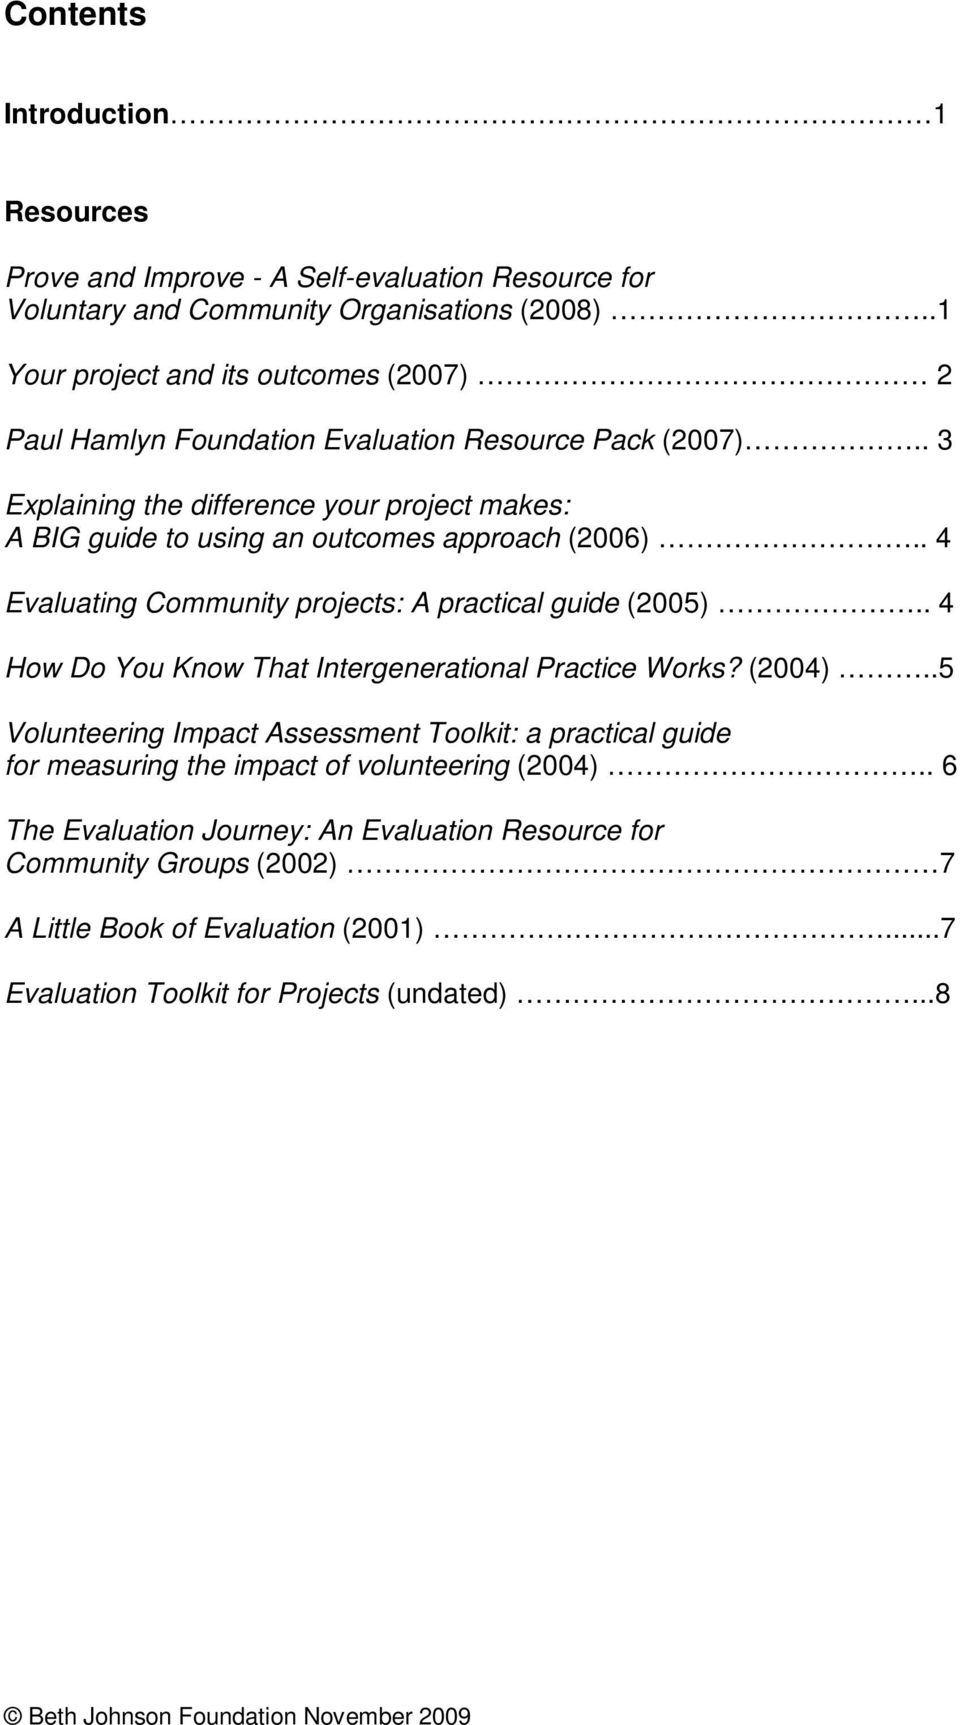 . 3 Explaining the difference your project makes: A BIG guide to using an outcomes approach (2006).. 4 Evaluating Community projects: A practical guide (2005).